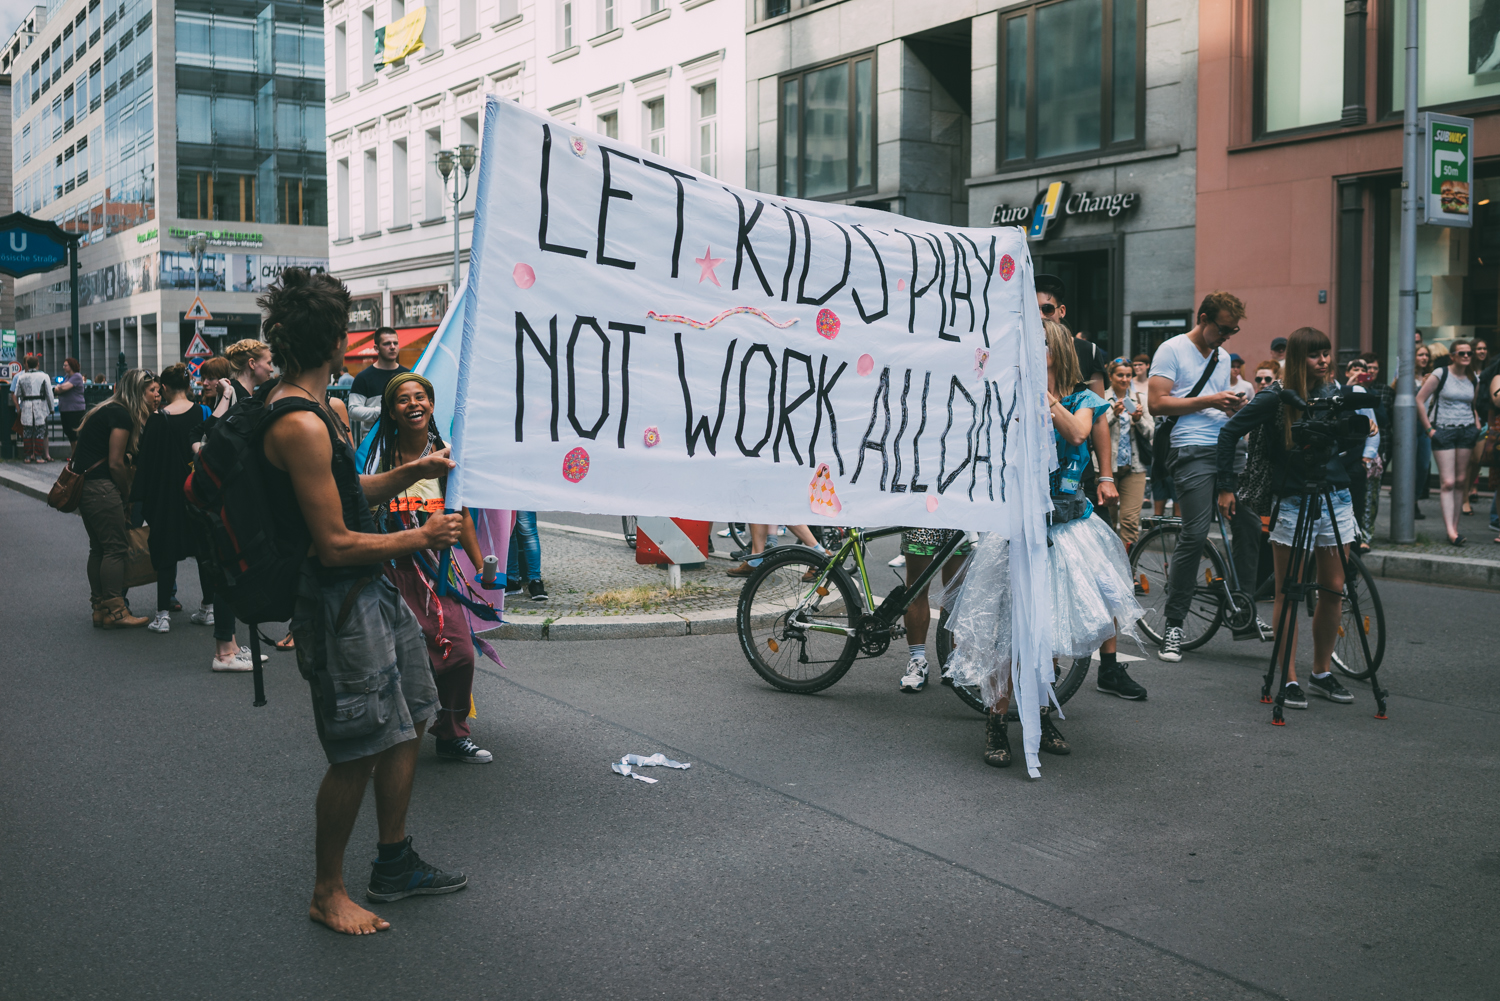 Let Kids Play Not Work All Day